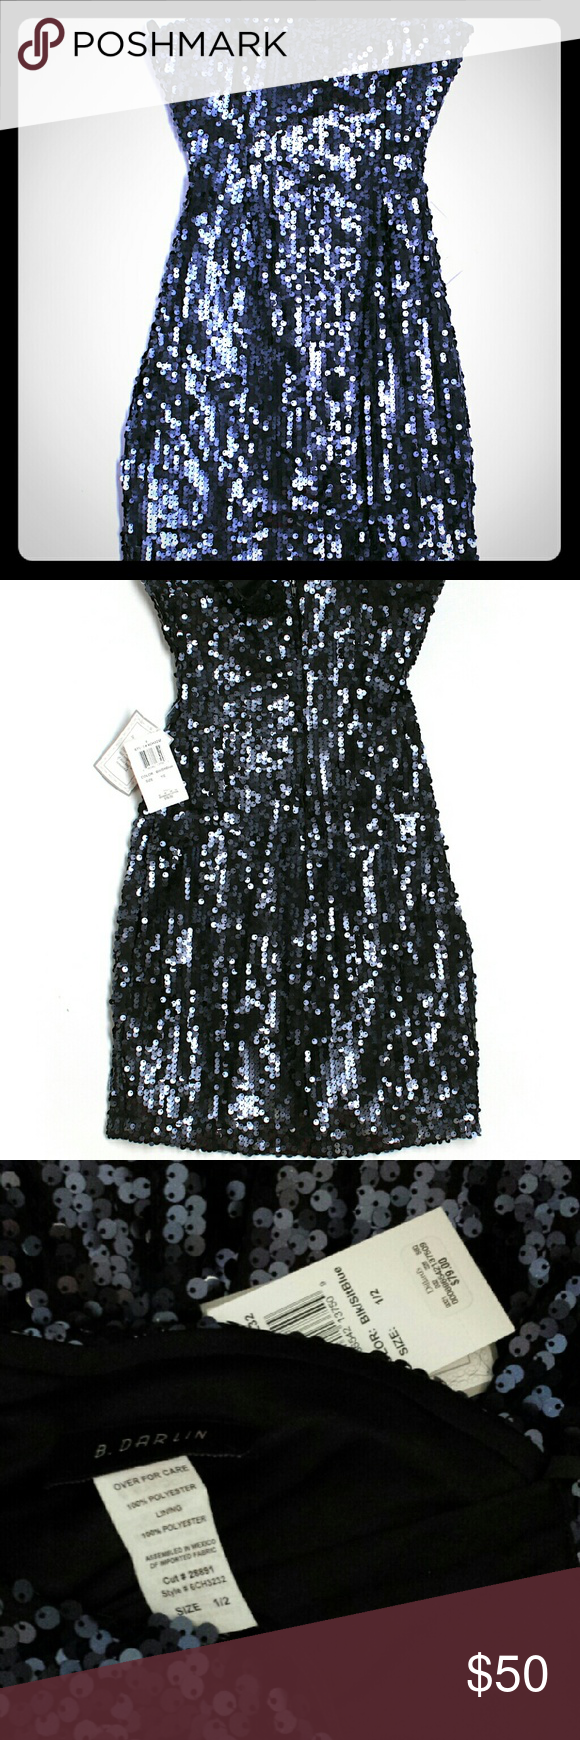 489b42ff8 NWT B.Darlin Sequin Strapless Dress NWT | Midnight blue, Strapless ...